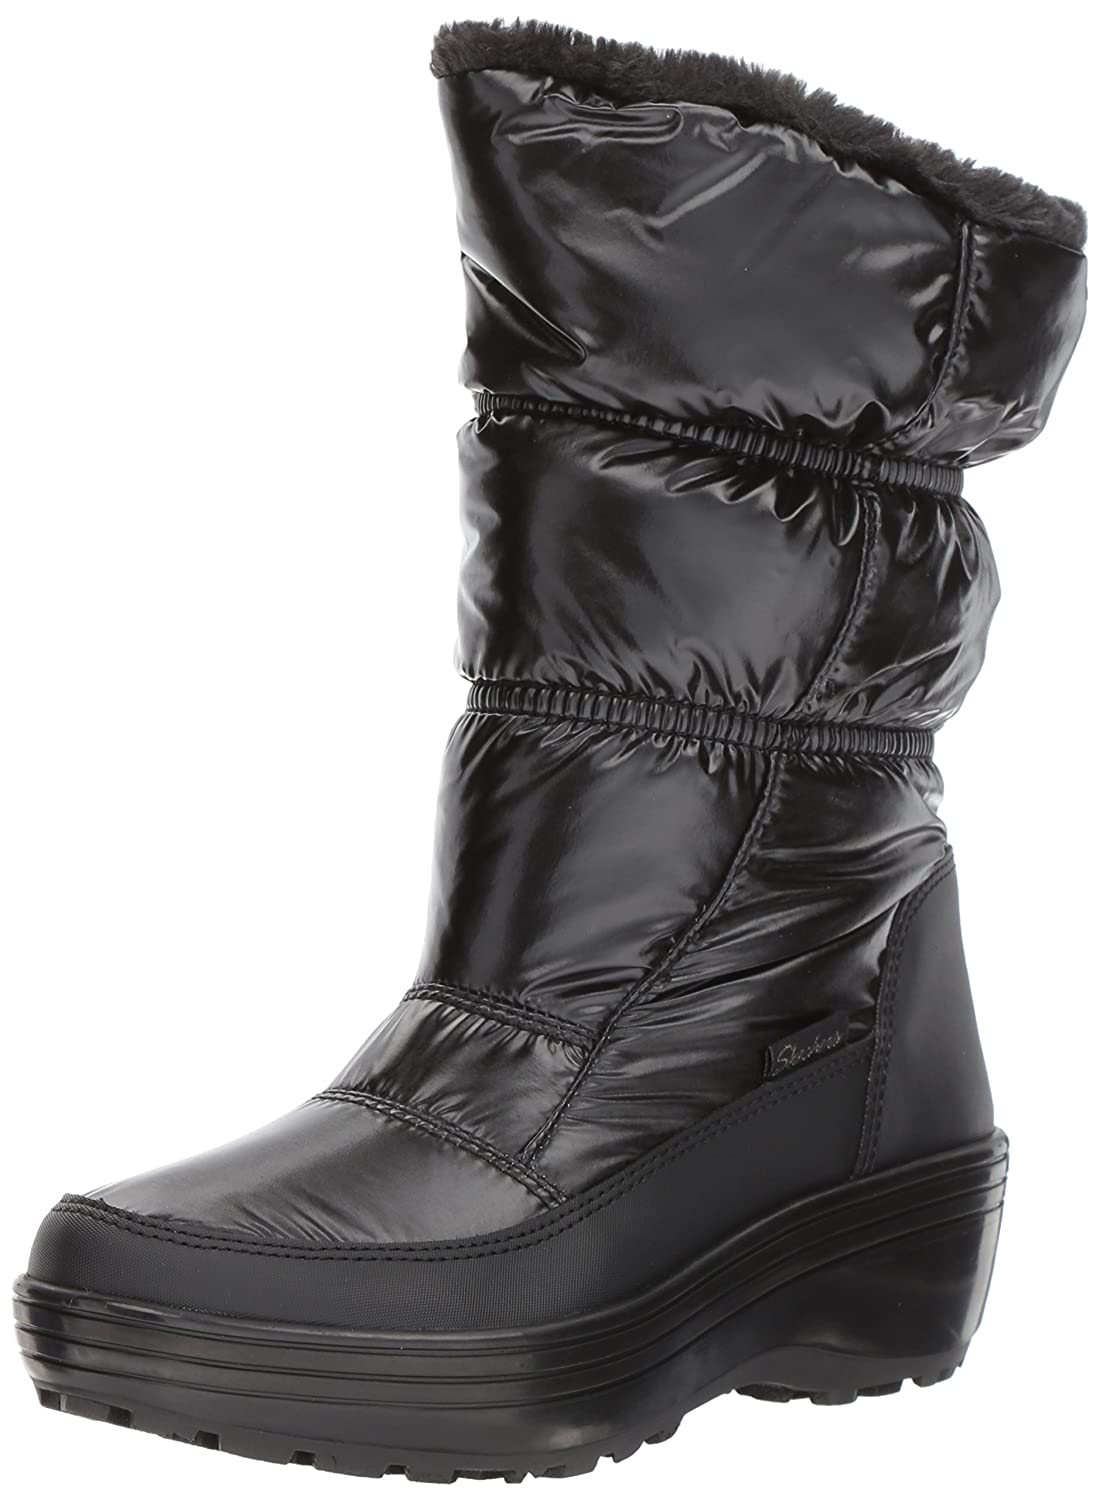 Skechers Women's Alaska-Tall Quilted Snow Boot B06XH4Z4KS 6 B(M) US|Black